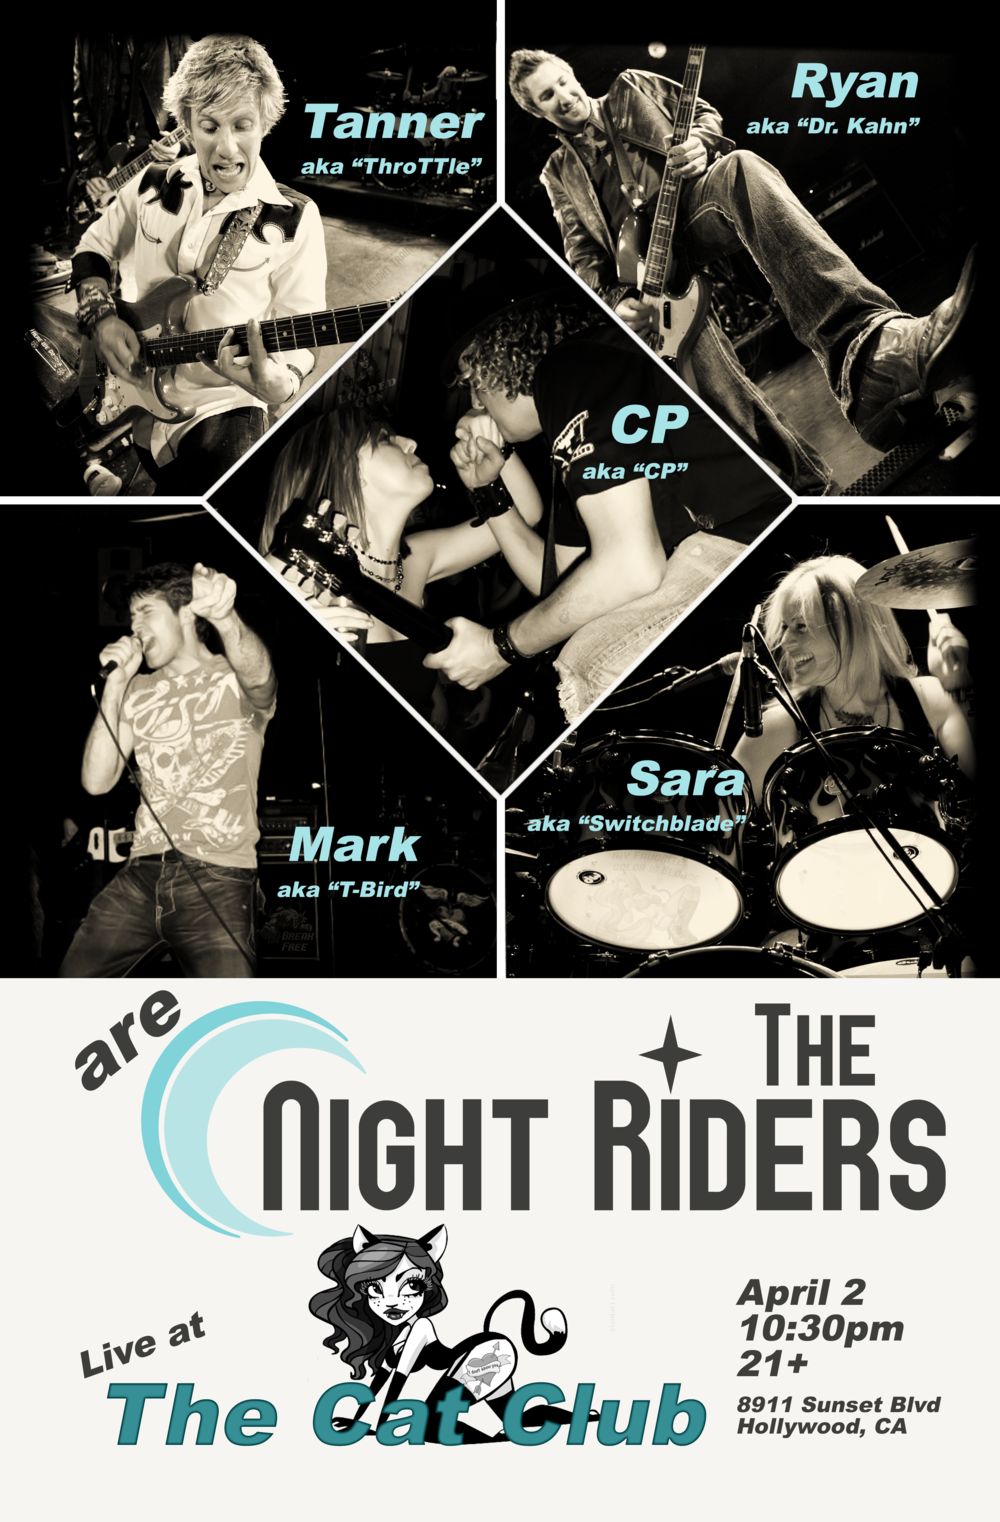 Nightriders_Cat_Club_300dpi.png